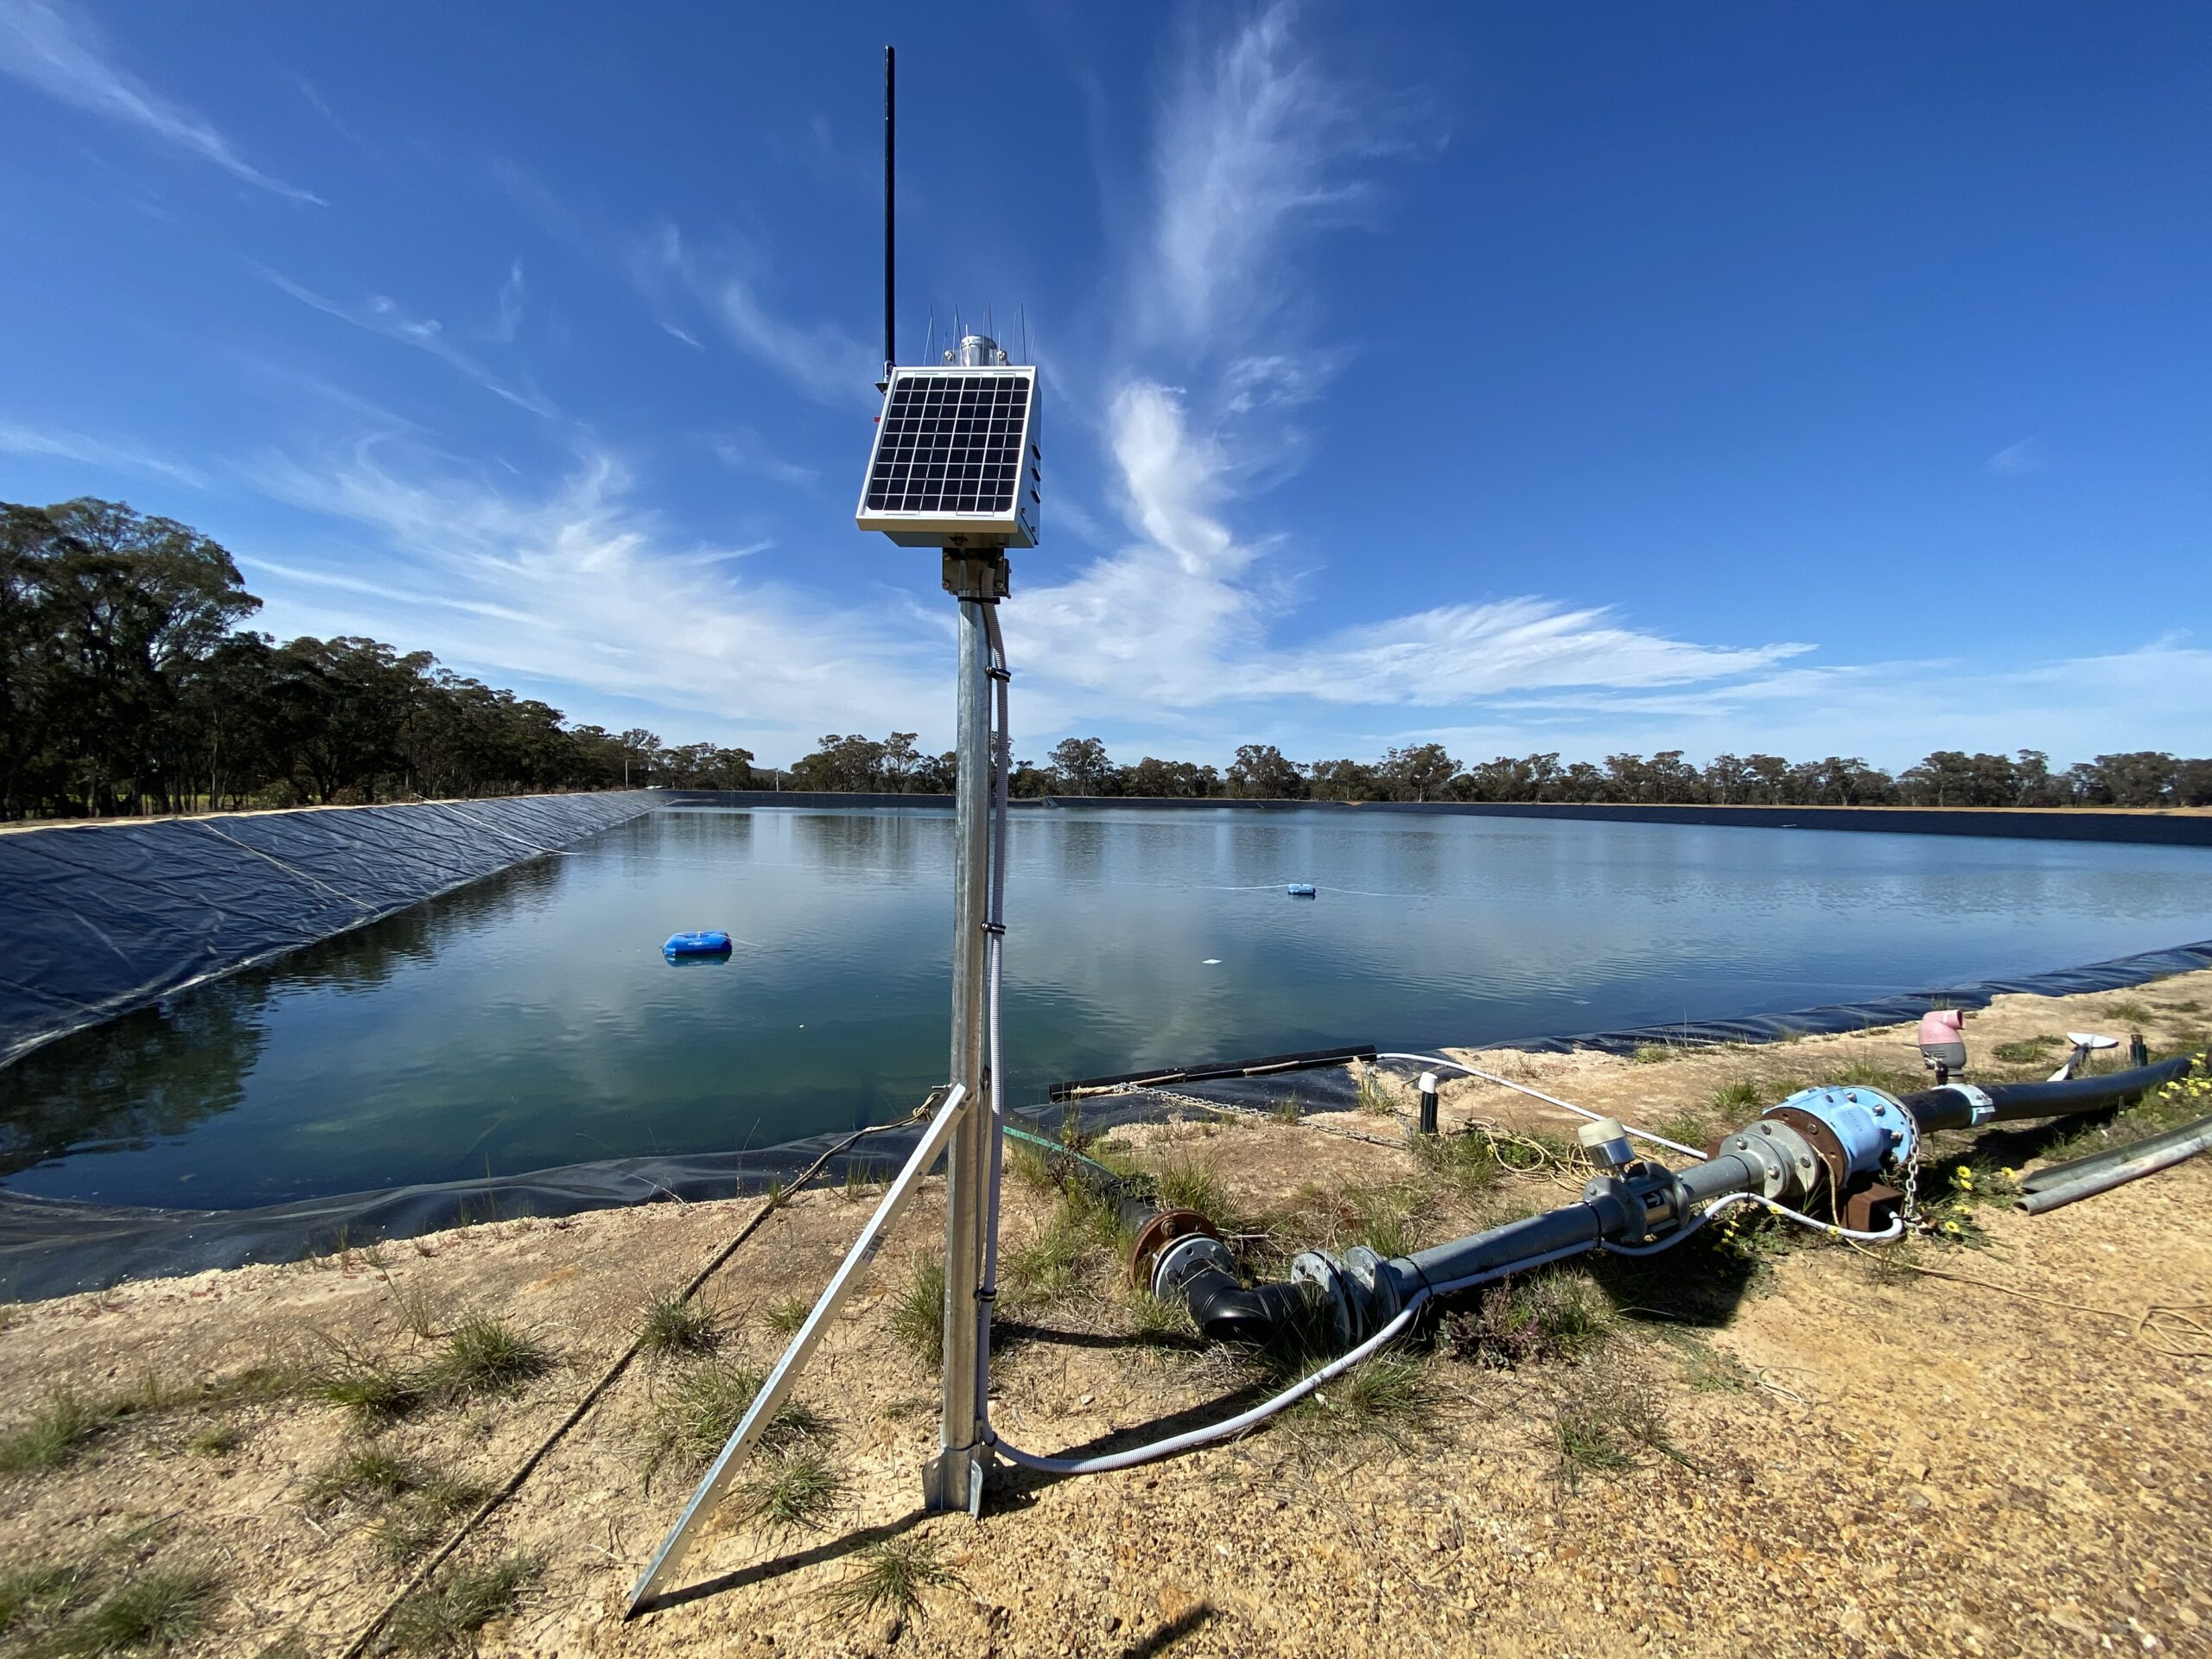 RipTide R1-001 mounted with Solar Option Monitoring Dam at Gold Mine